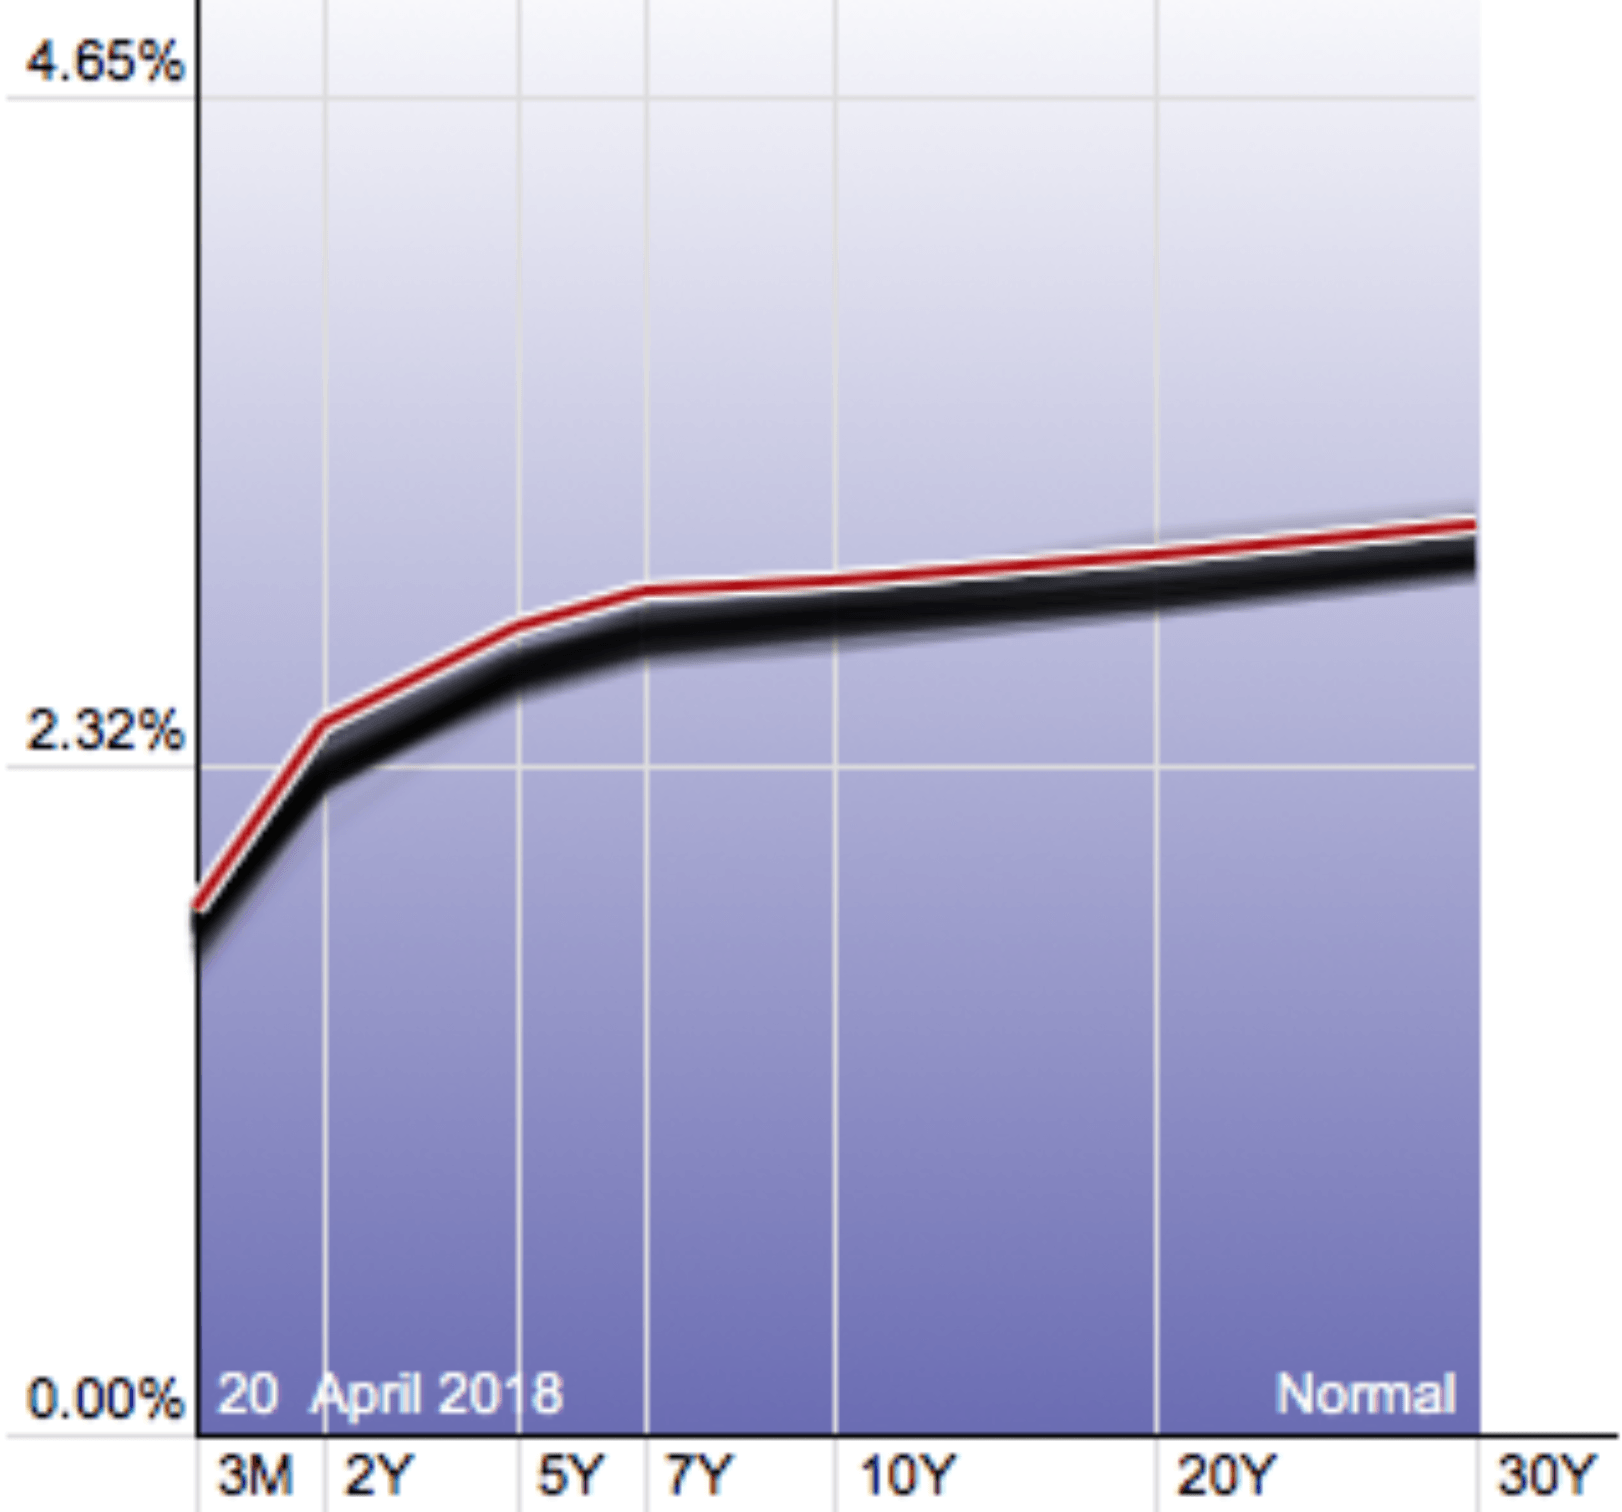 US Yield Curve 210418